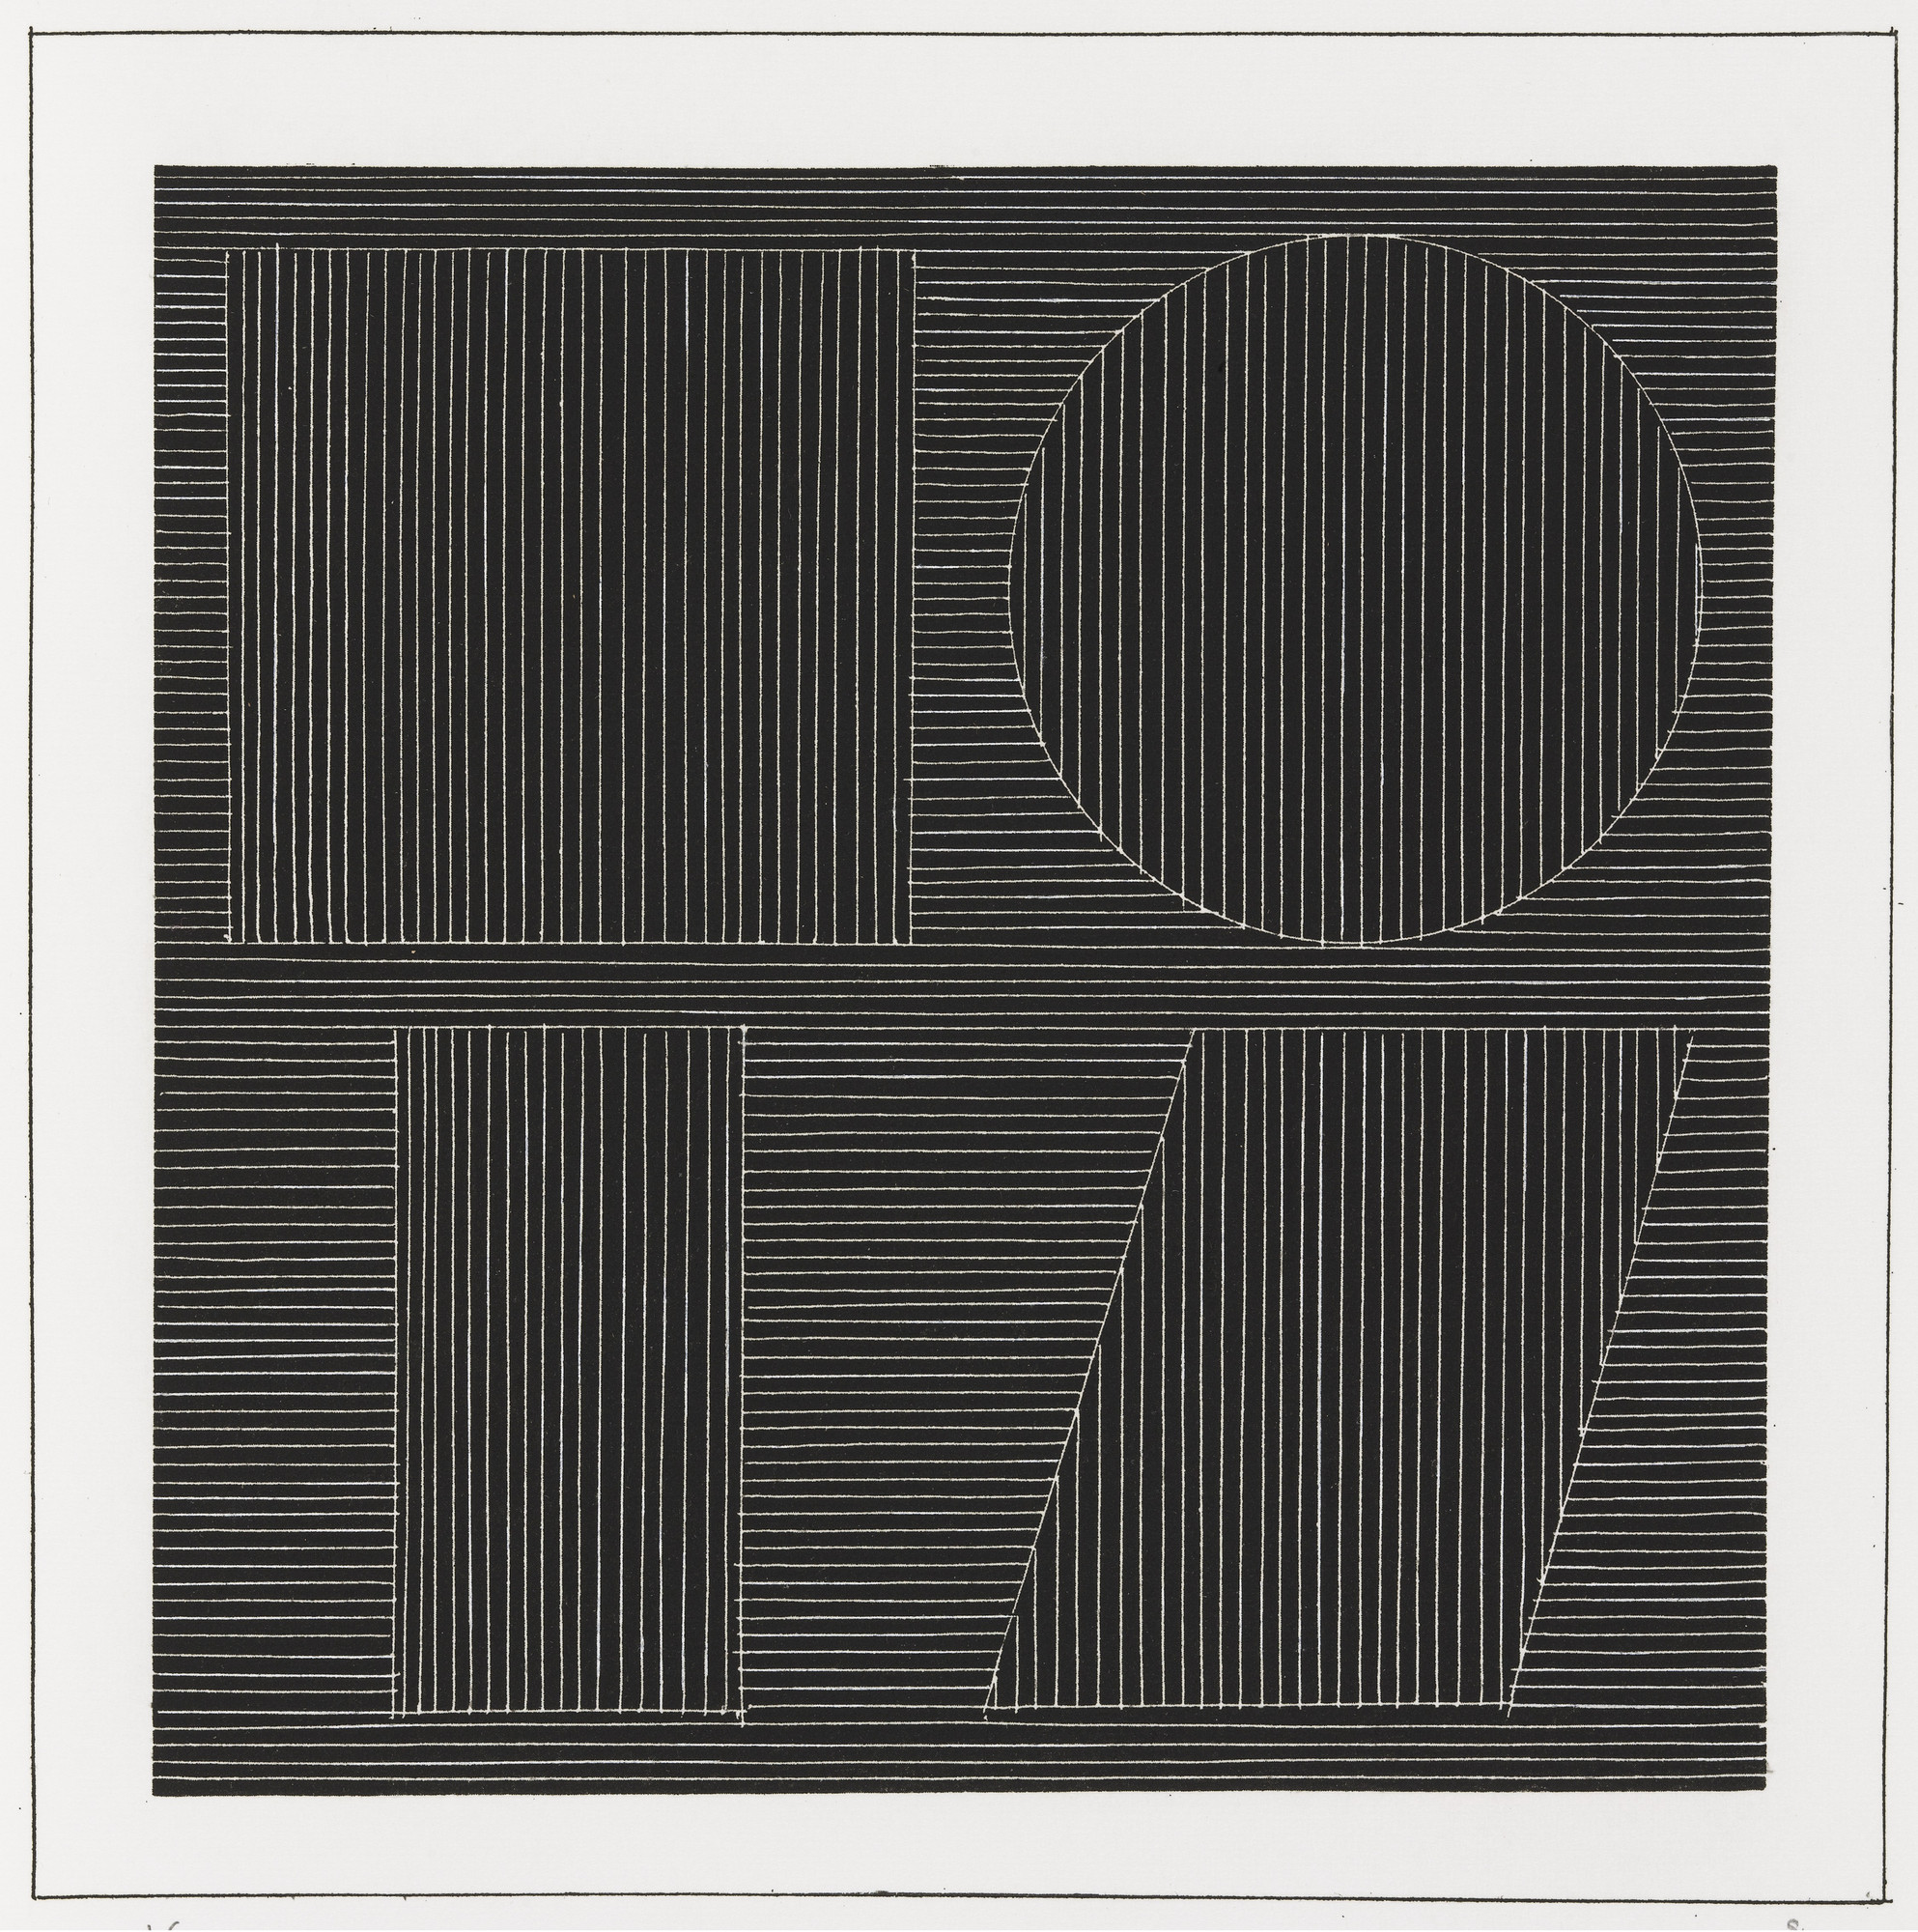 Sol LeWitt. Plate (folio 47) from Six Geometric Figures and All Their Combinations, Volume I. 1980